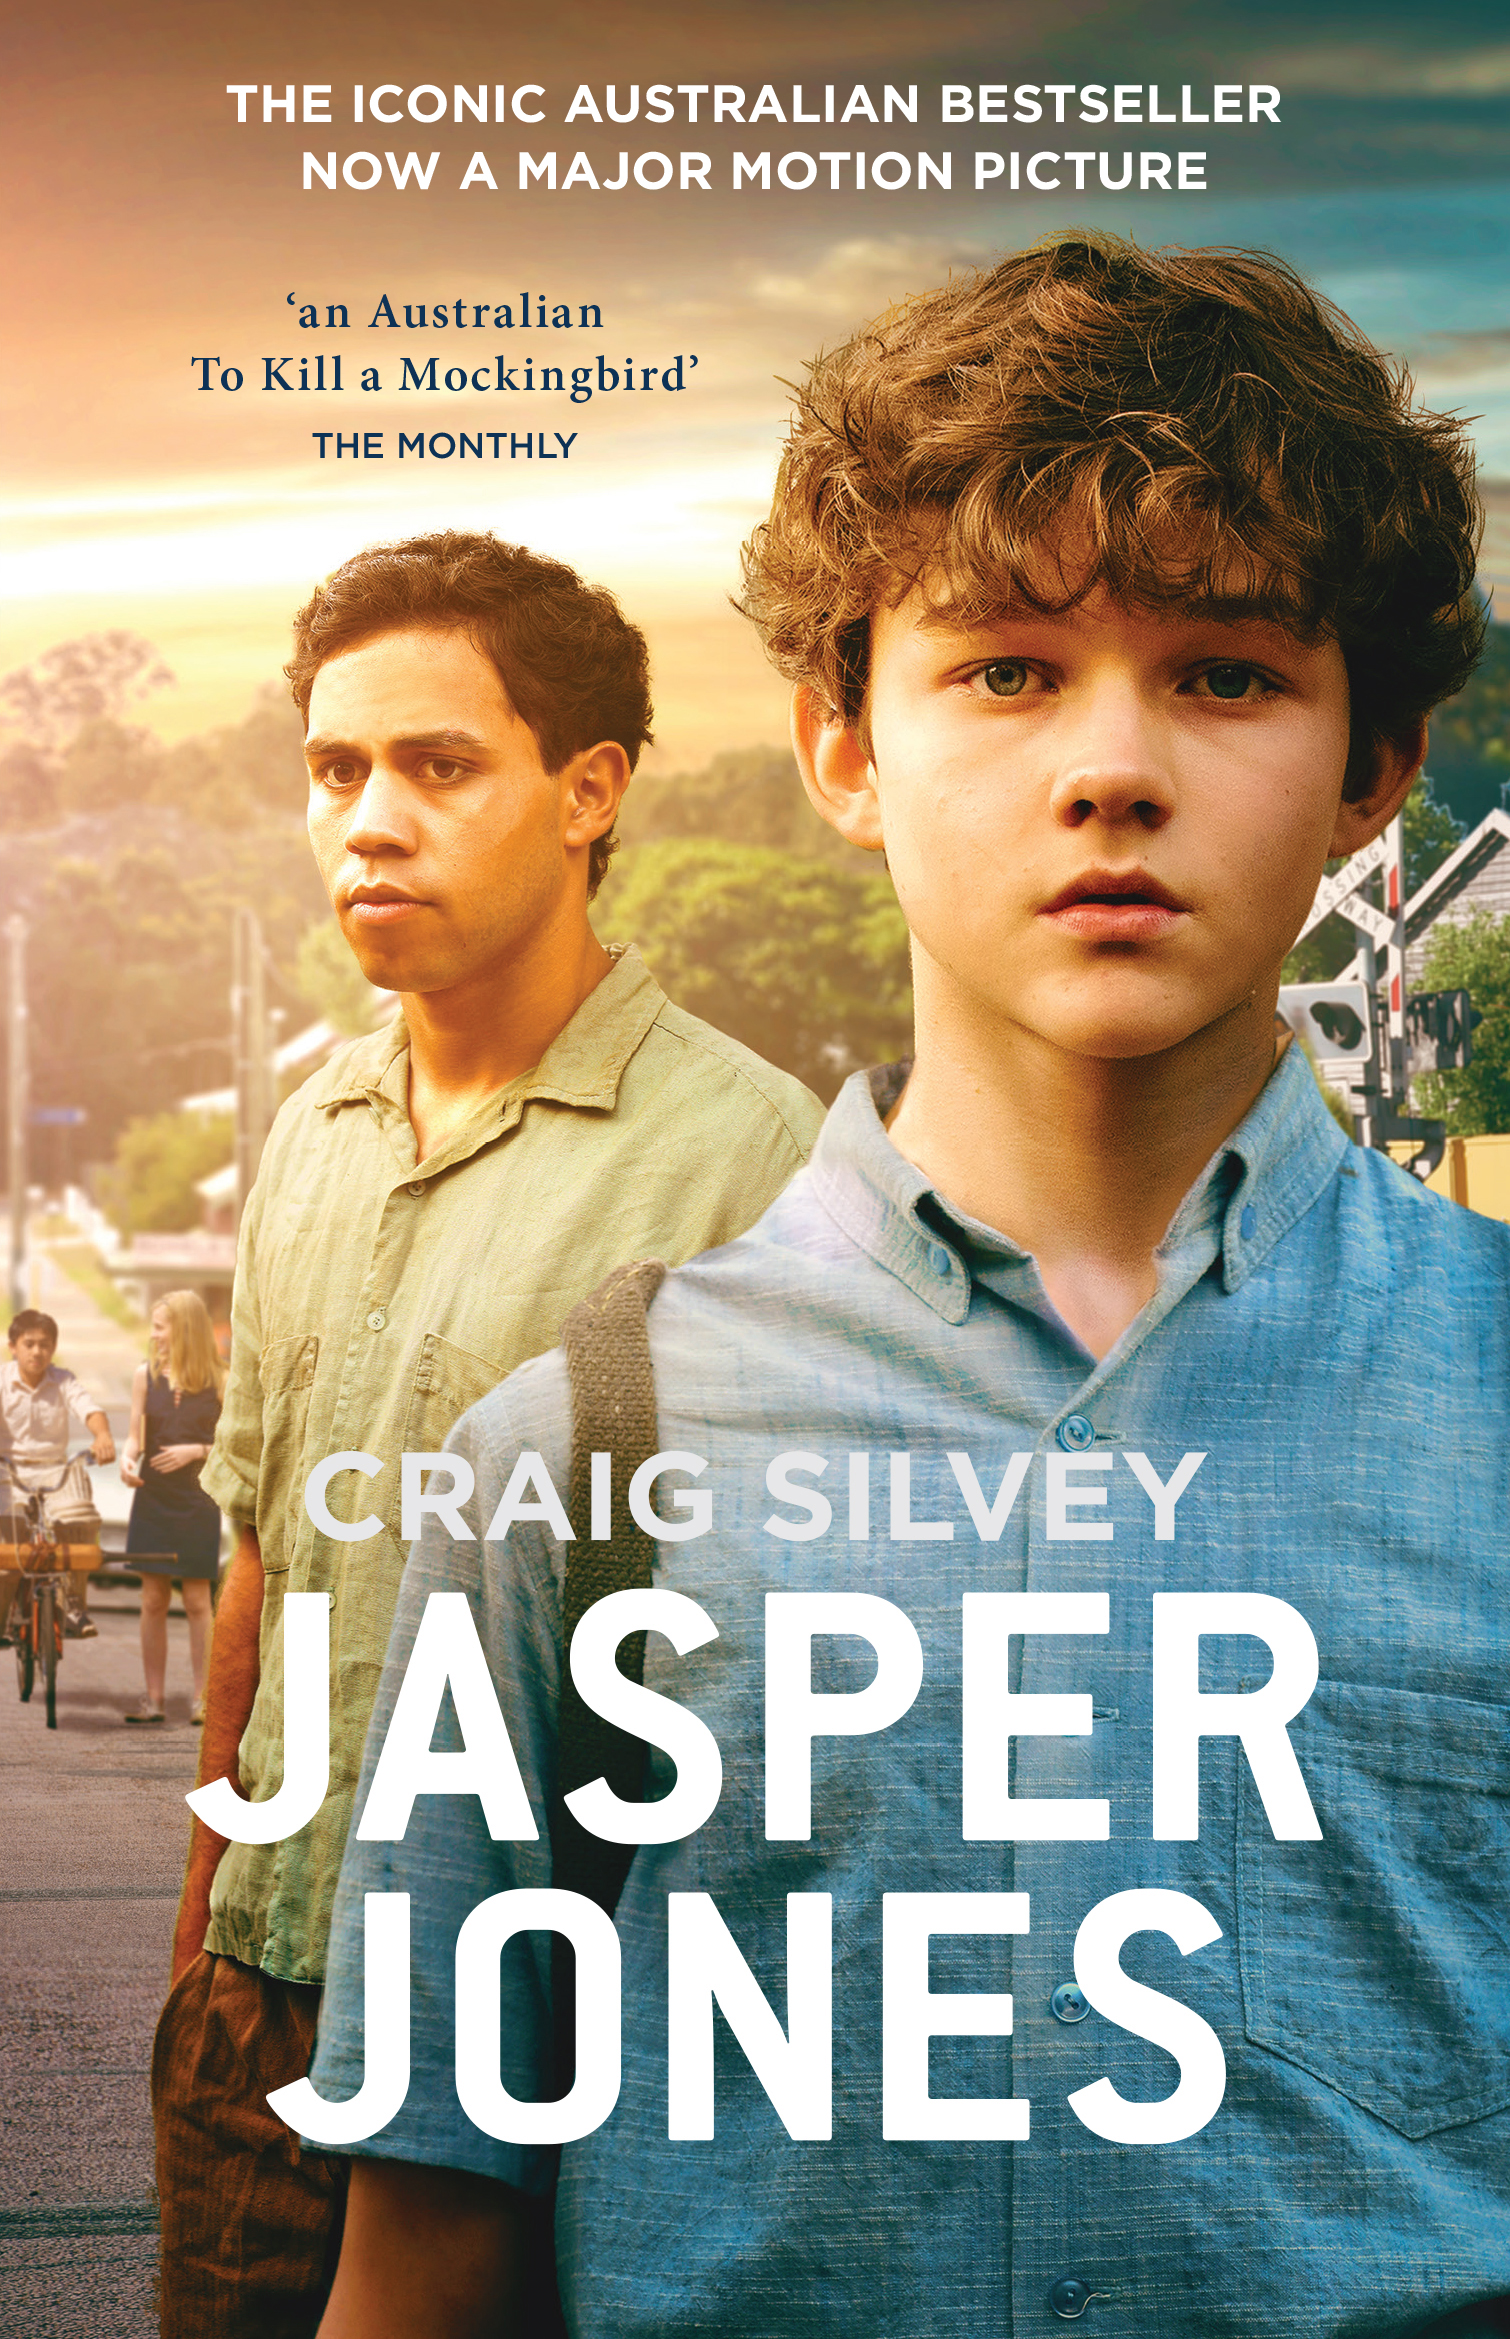 Jasper Jones by Craig Silvey, ISBN: 9781760295929